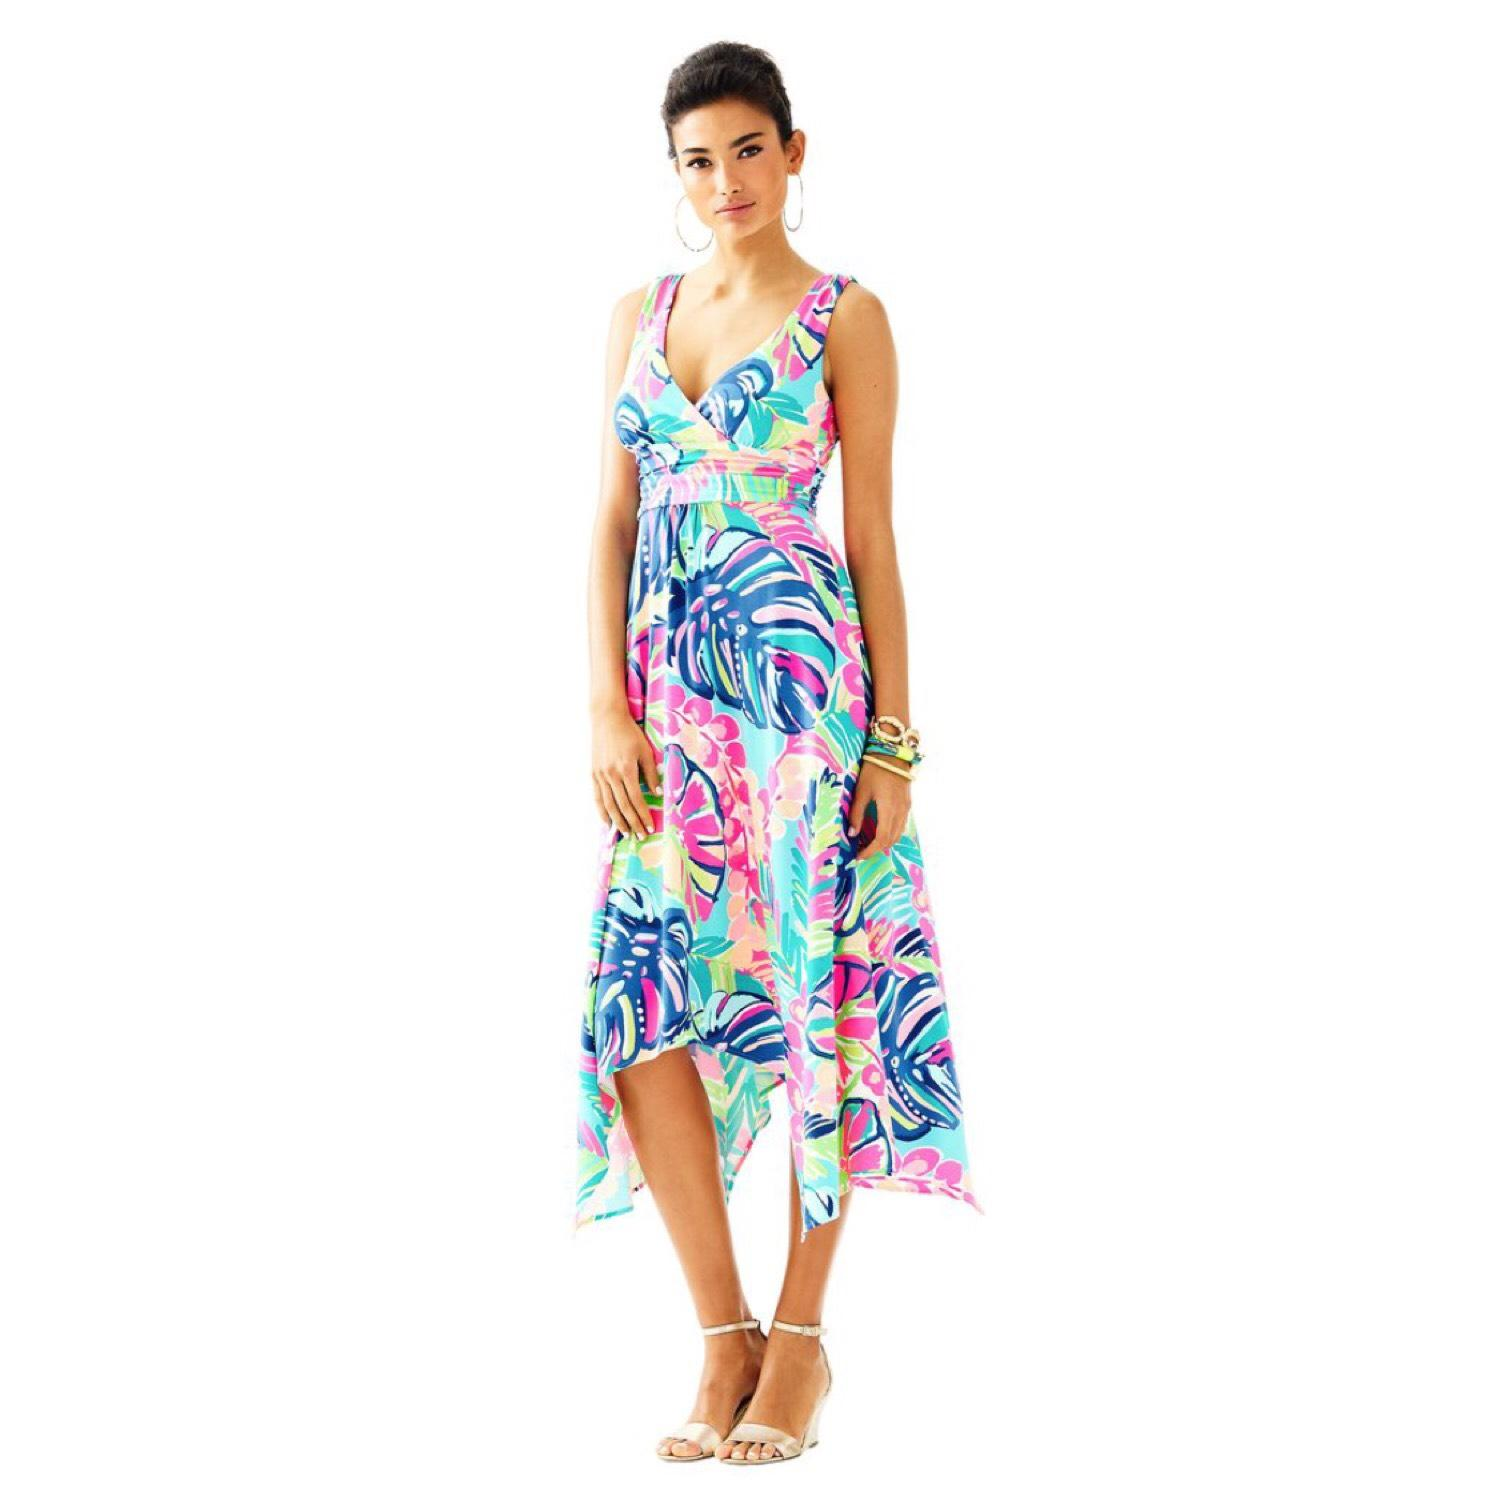 Lilly Pulitzer Free Shipping Sloane Fit And Flare Mid Length